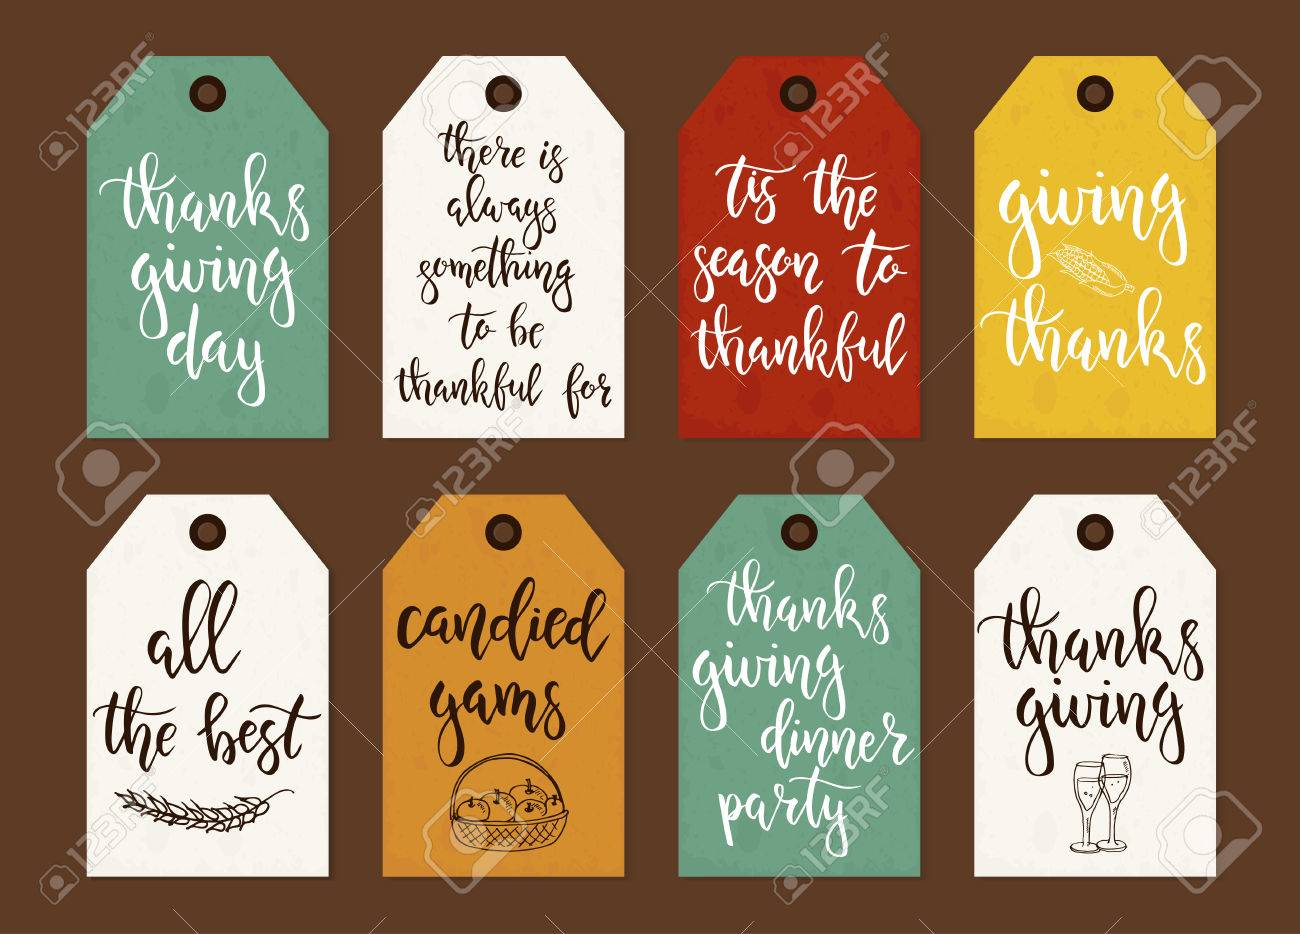 image regarding Free Printable Thanksgiving Tags called Thanksgiving working day common present tags and playing cards with calligraphy